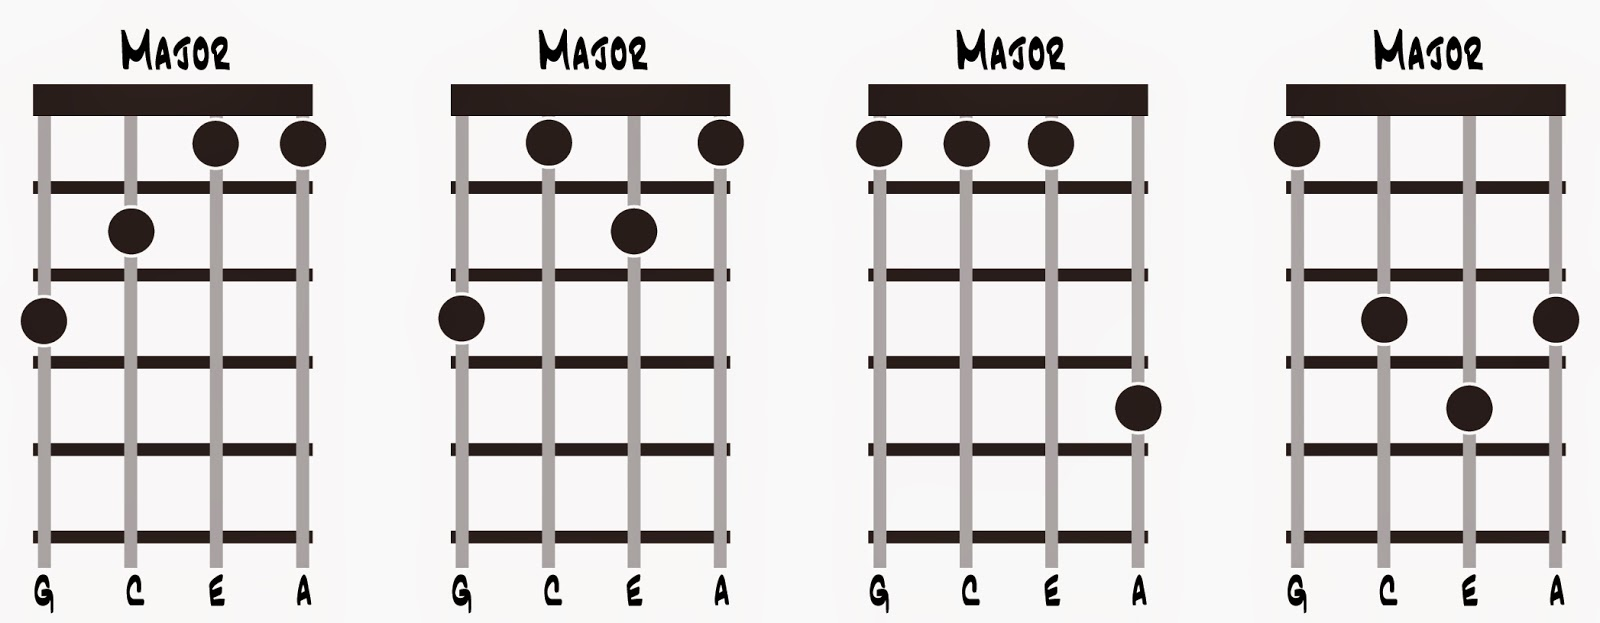 Cognition and reality ukulele chords and perceptrons four examples of four closed form or moveable shapes that define major chords for the ukulele see text for details hexwebz Gallery